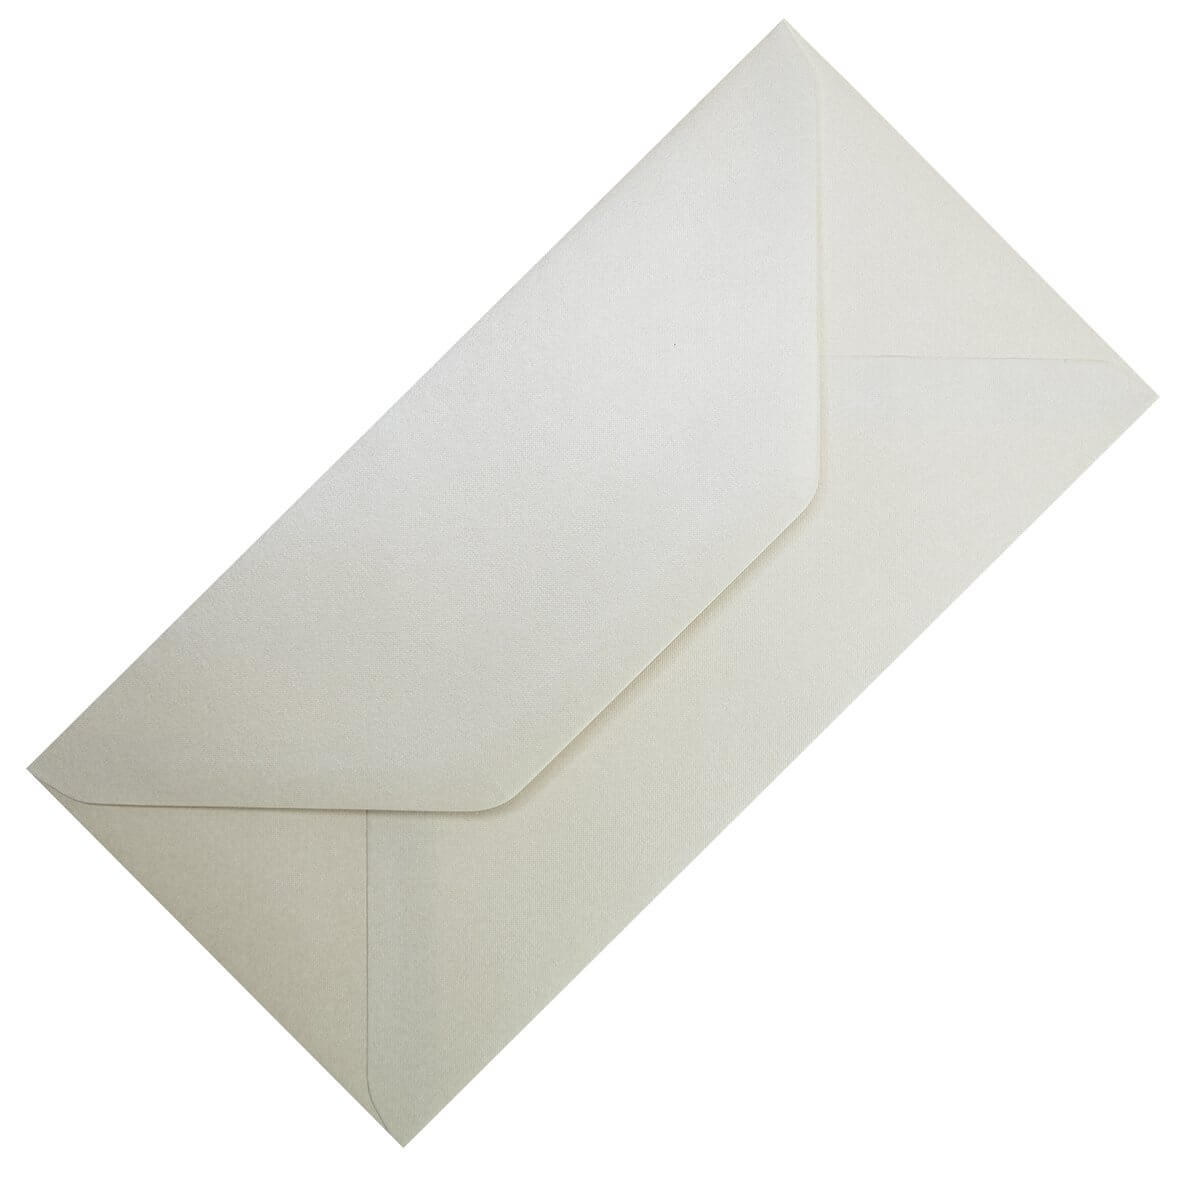 Fabrique Ivory DL Envelope Large Tall